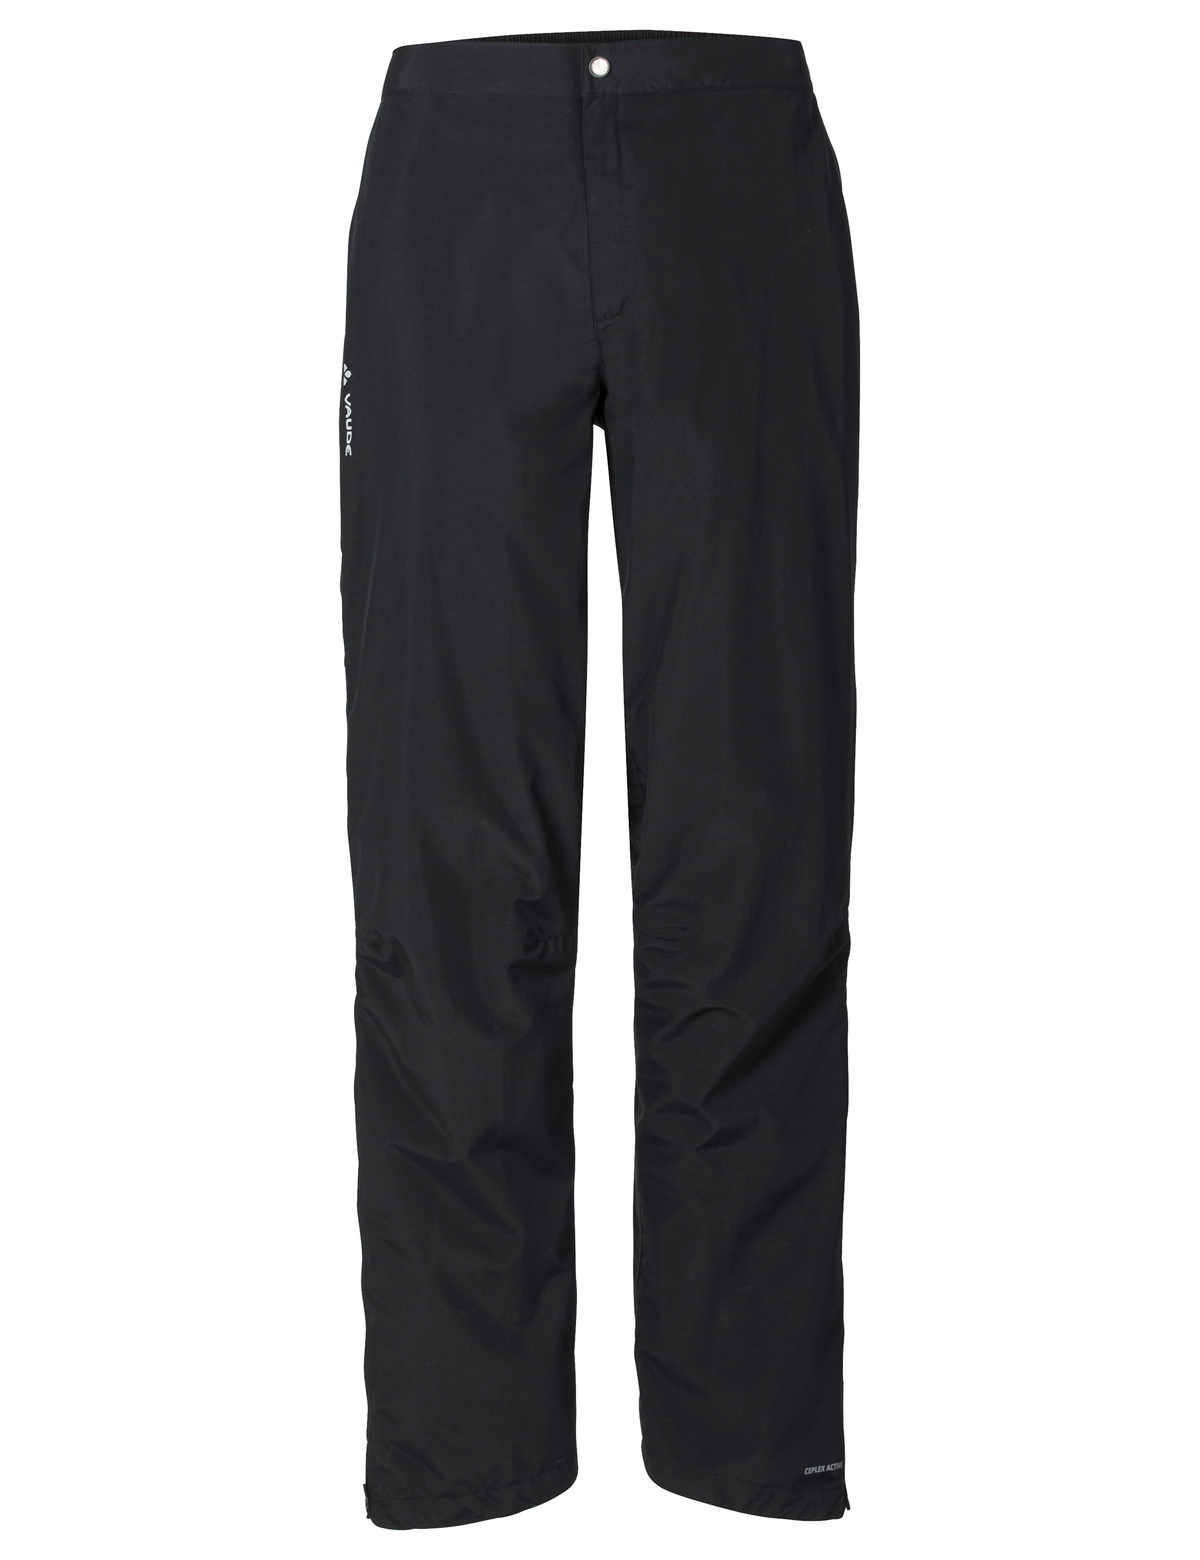 VAUDE Men´s Yaras Rain Pants II black Größe L-Long - 2-Rad-Sport Wehrle